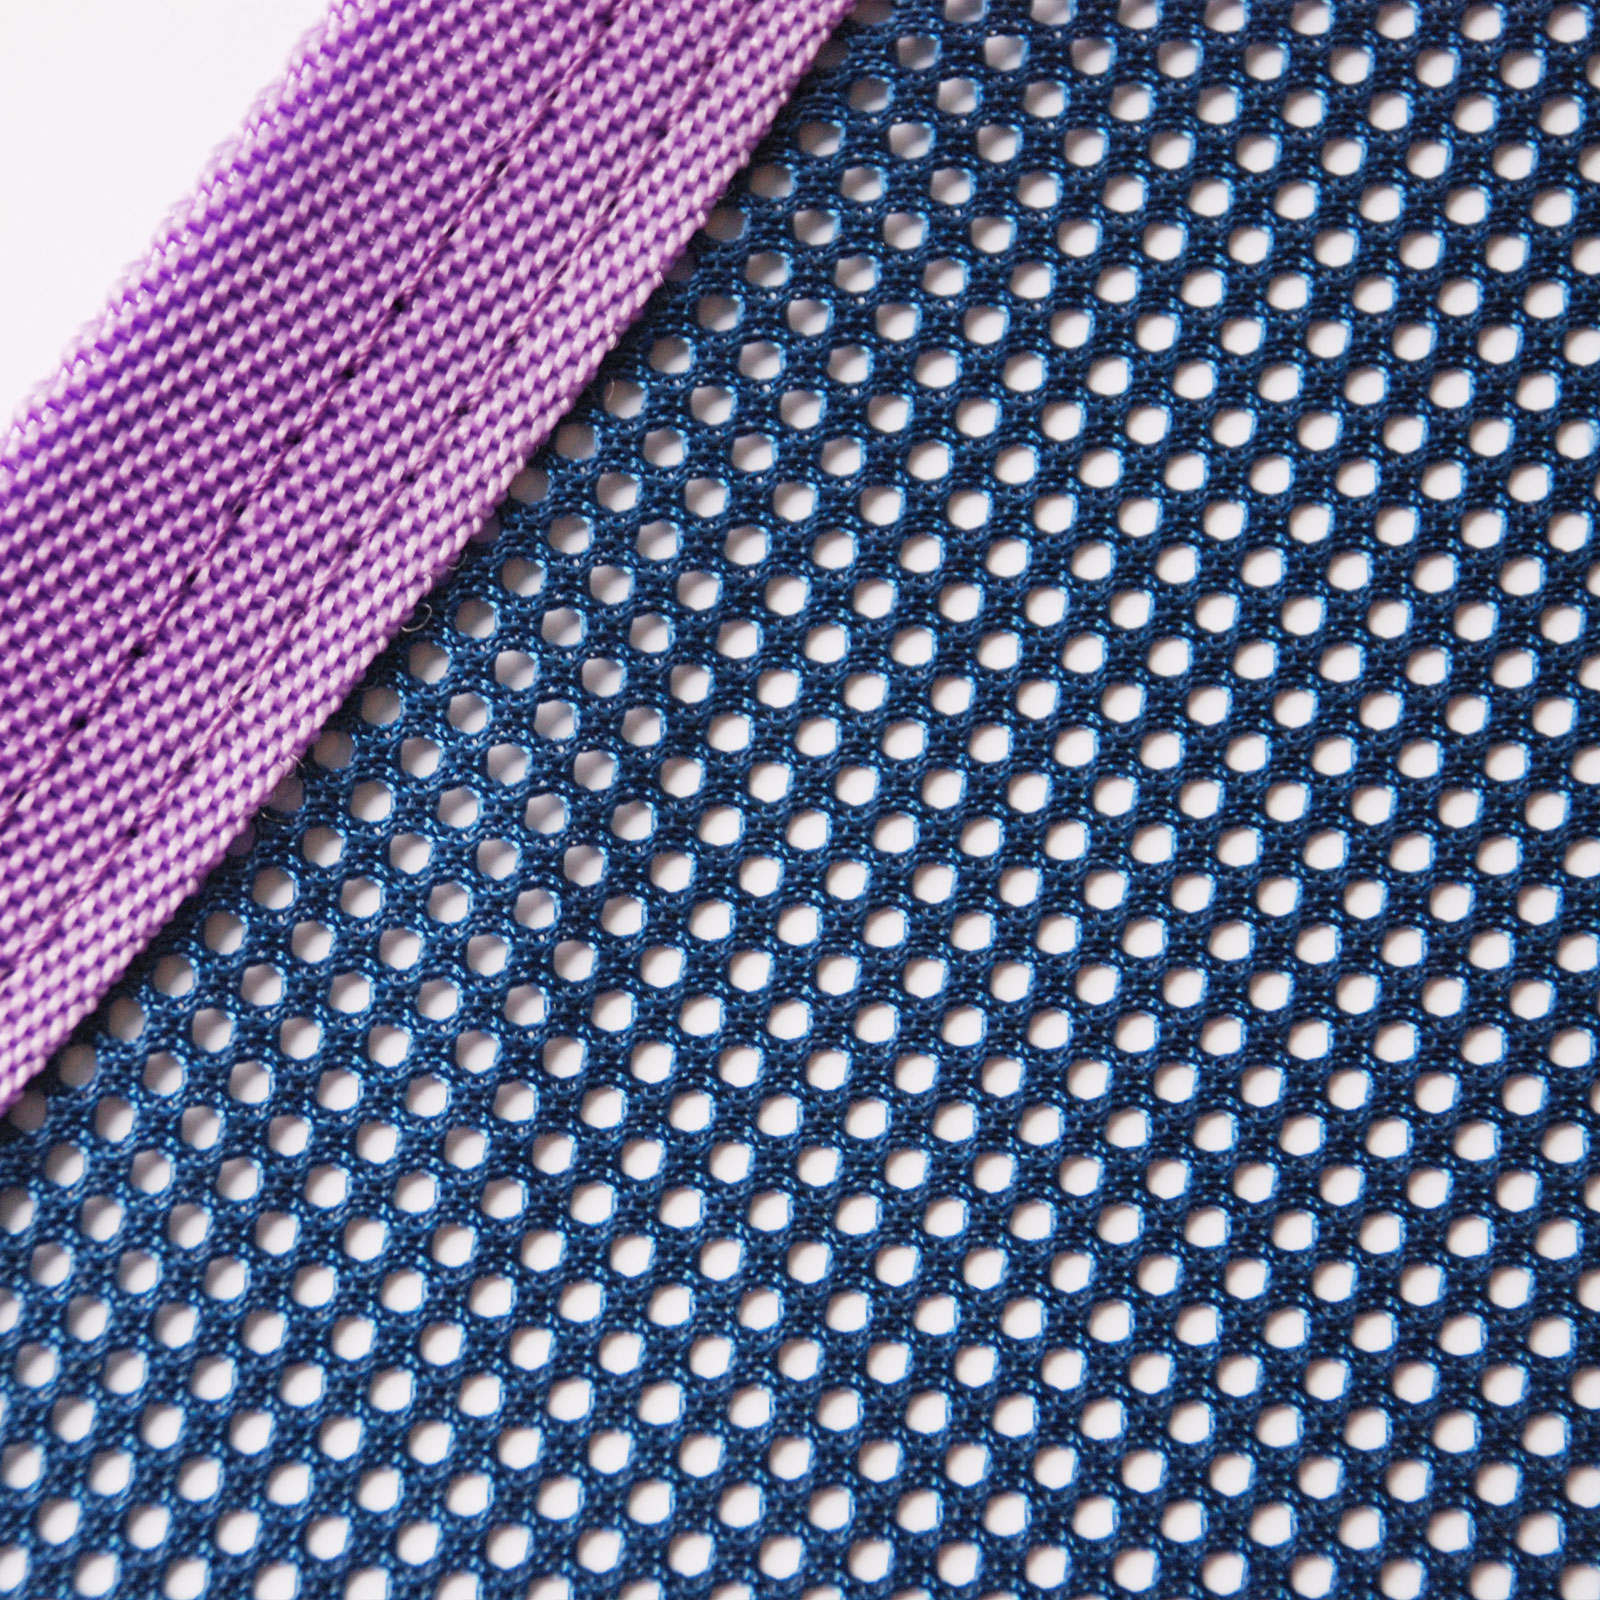 A close up image of the breathable lightweight mesh used in the Equine Magnetix rug